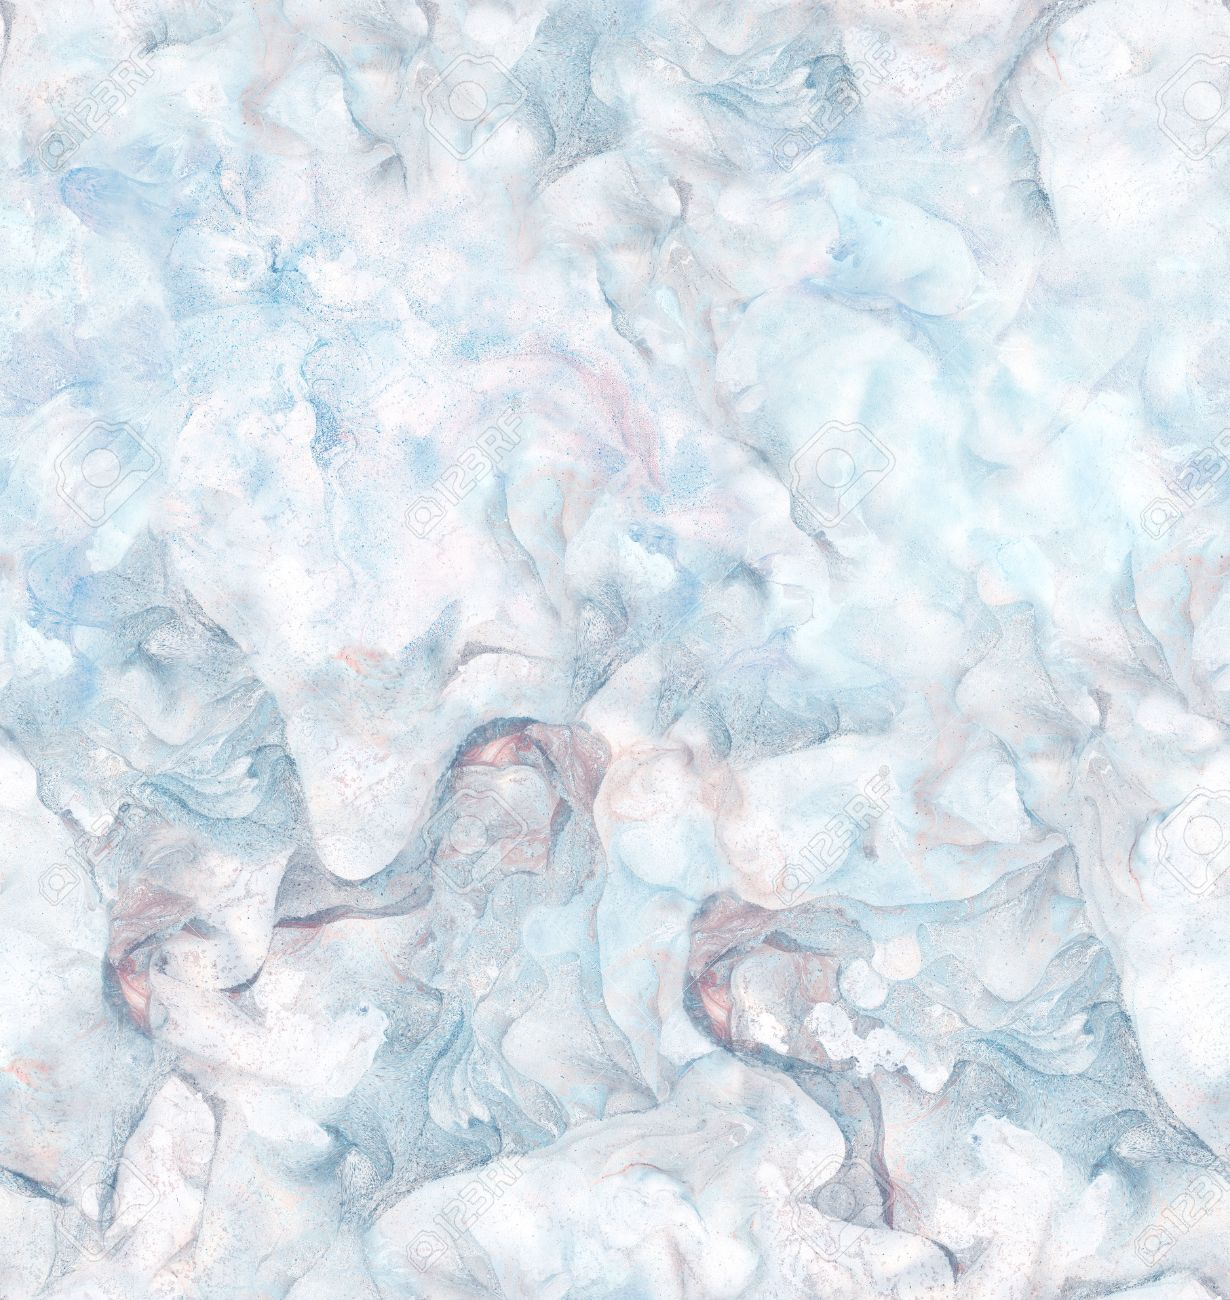 Background With Marbled Paper Texture In Blue And Pink Colors Stock